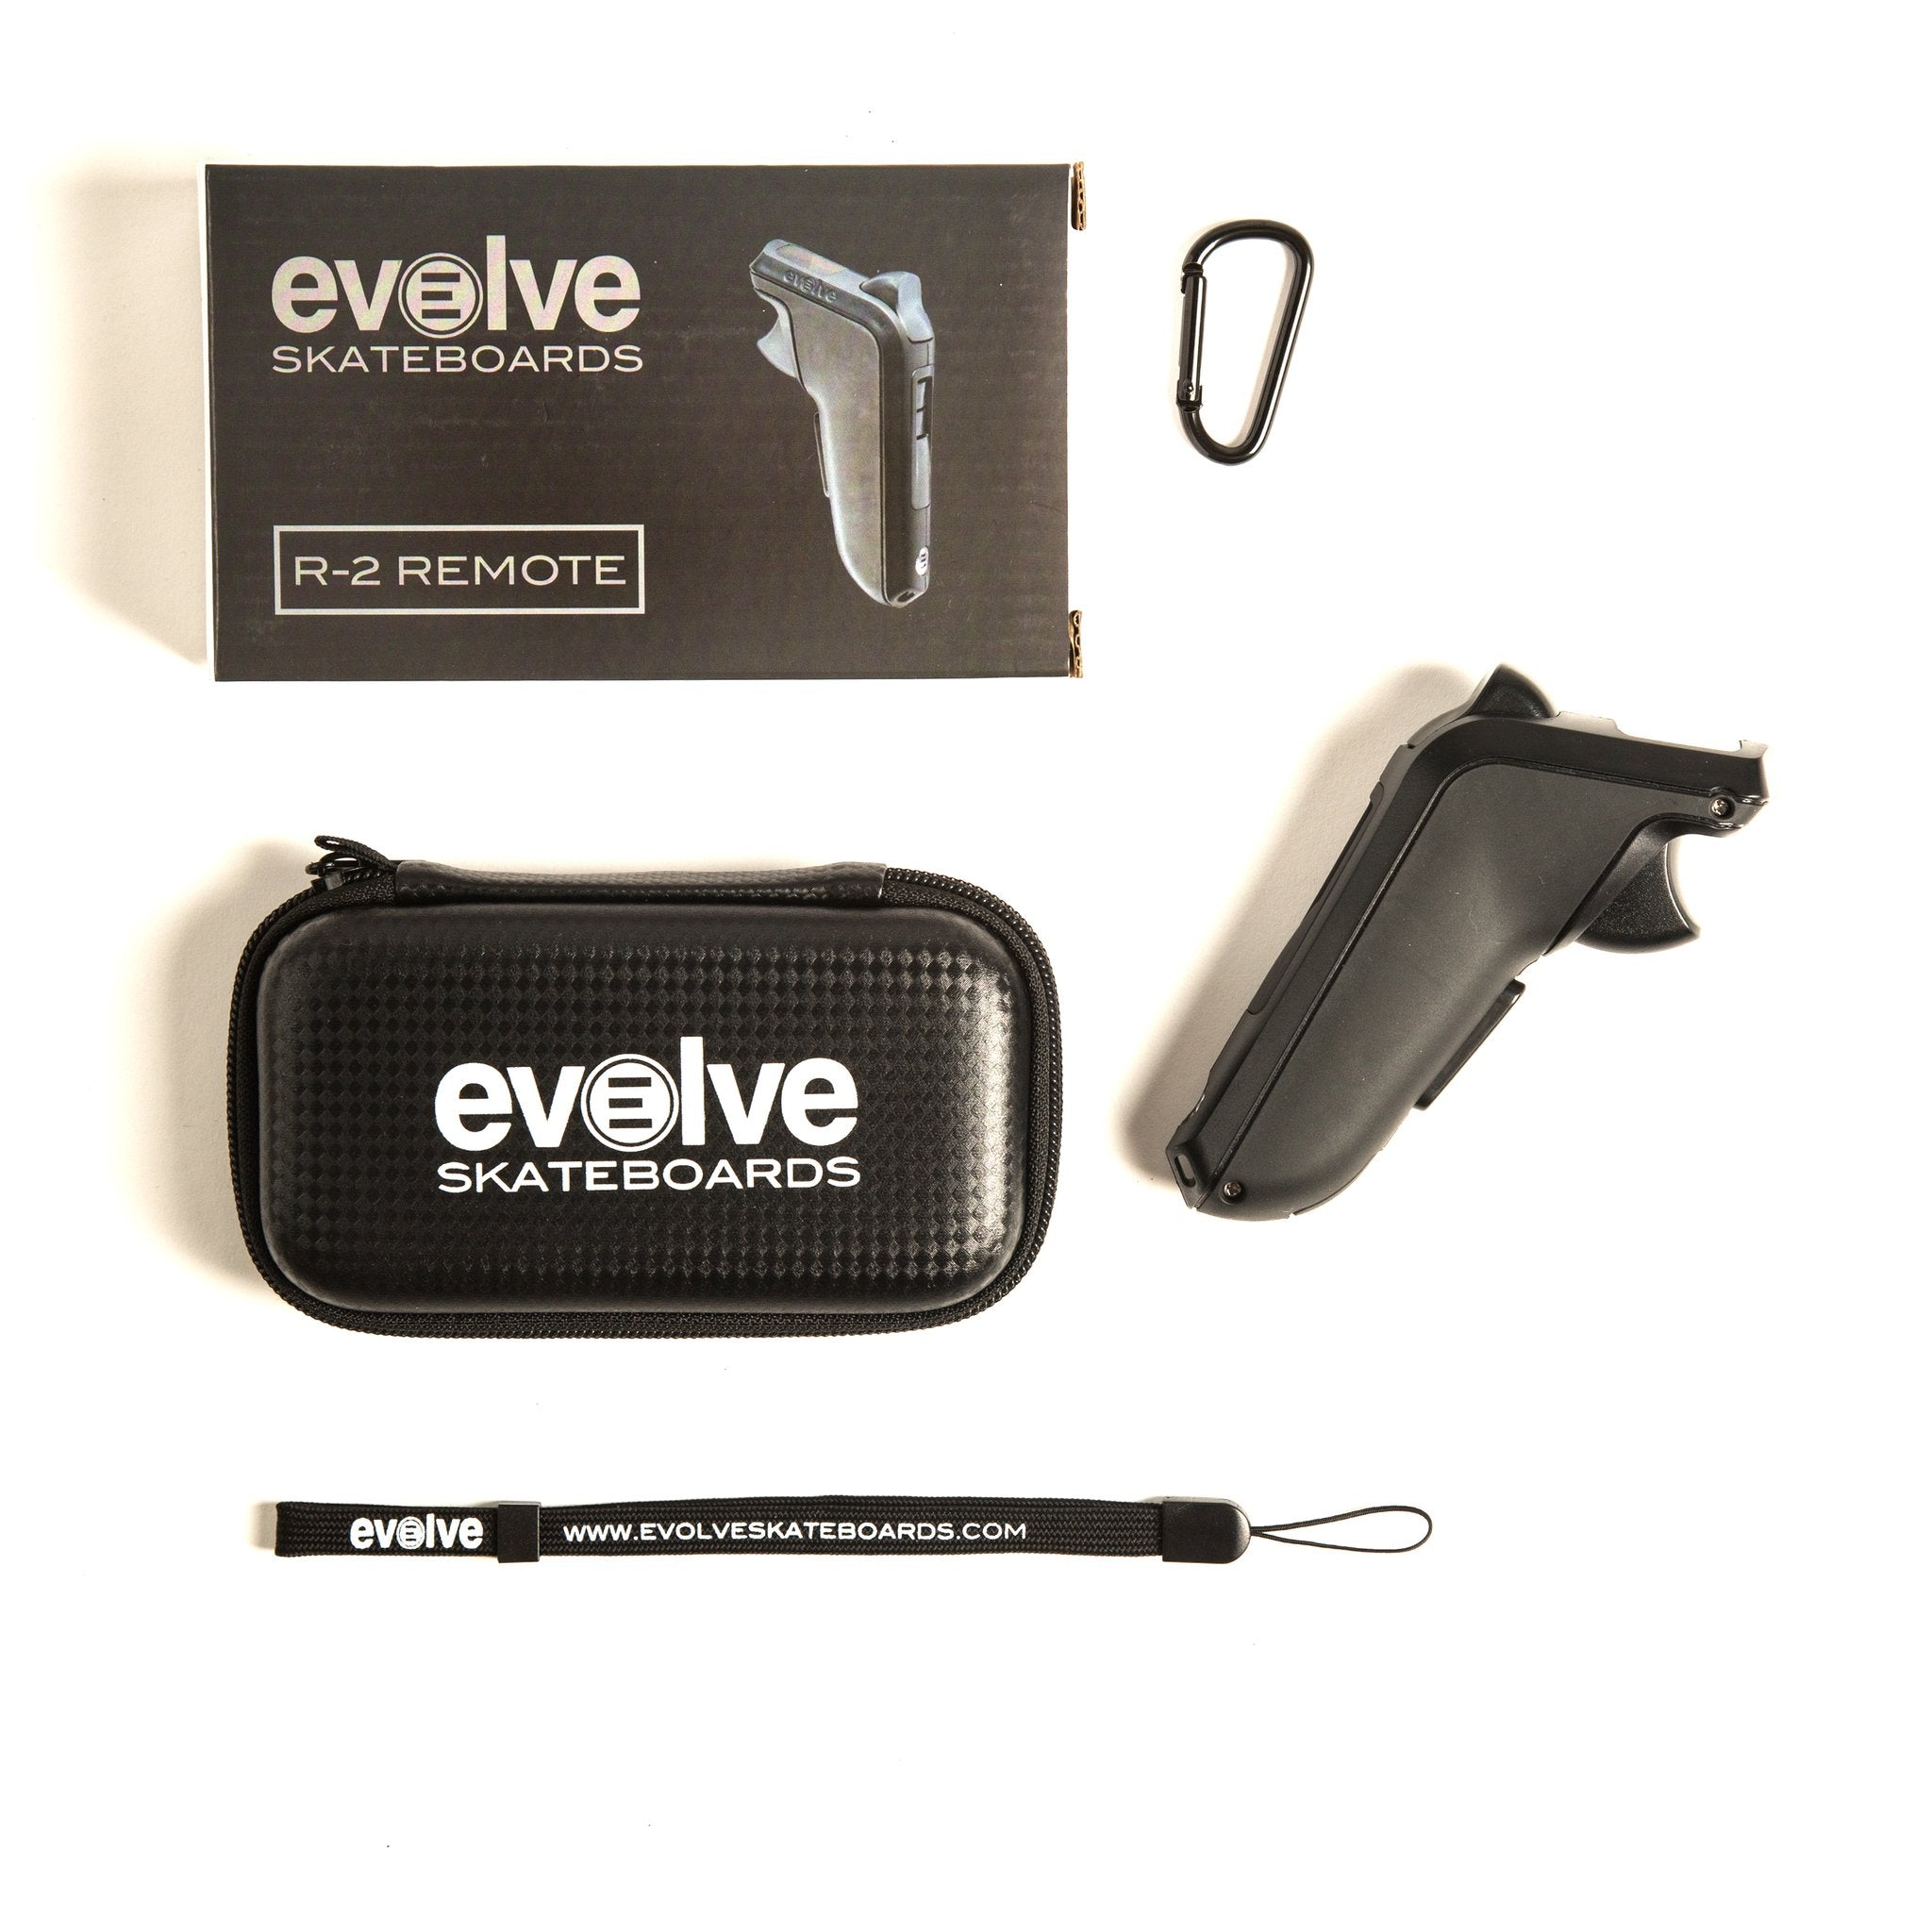 Evolve Skateboards R2 Remote